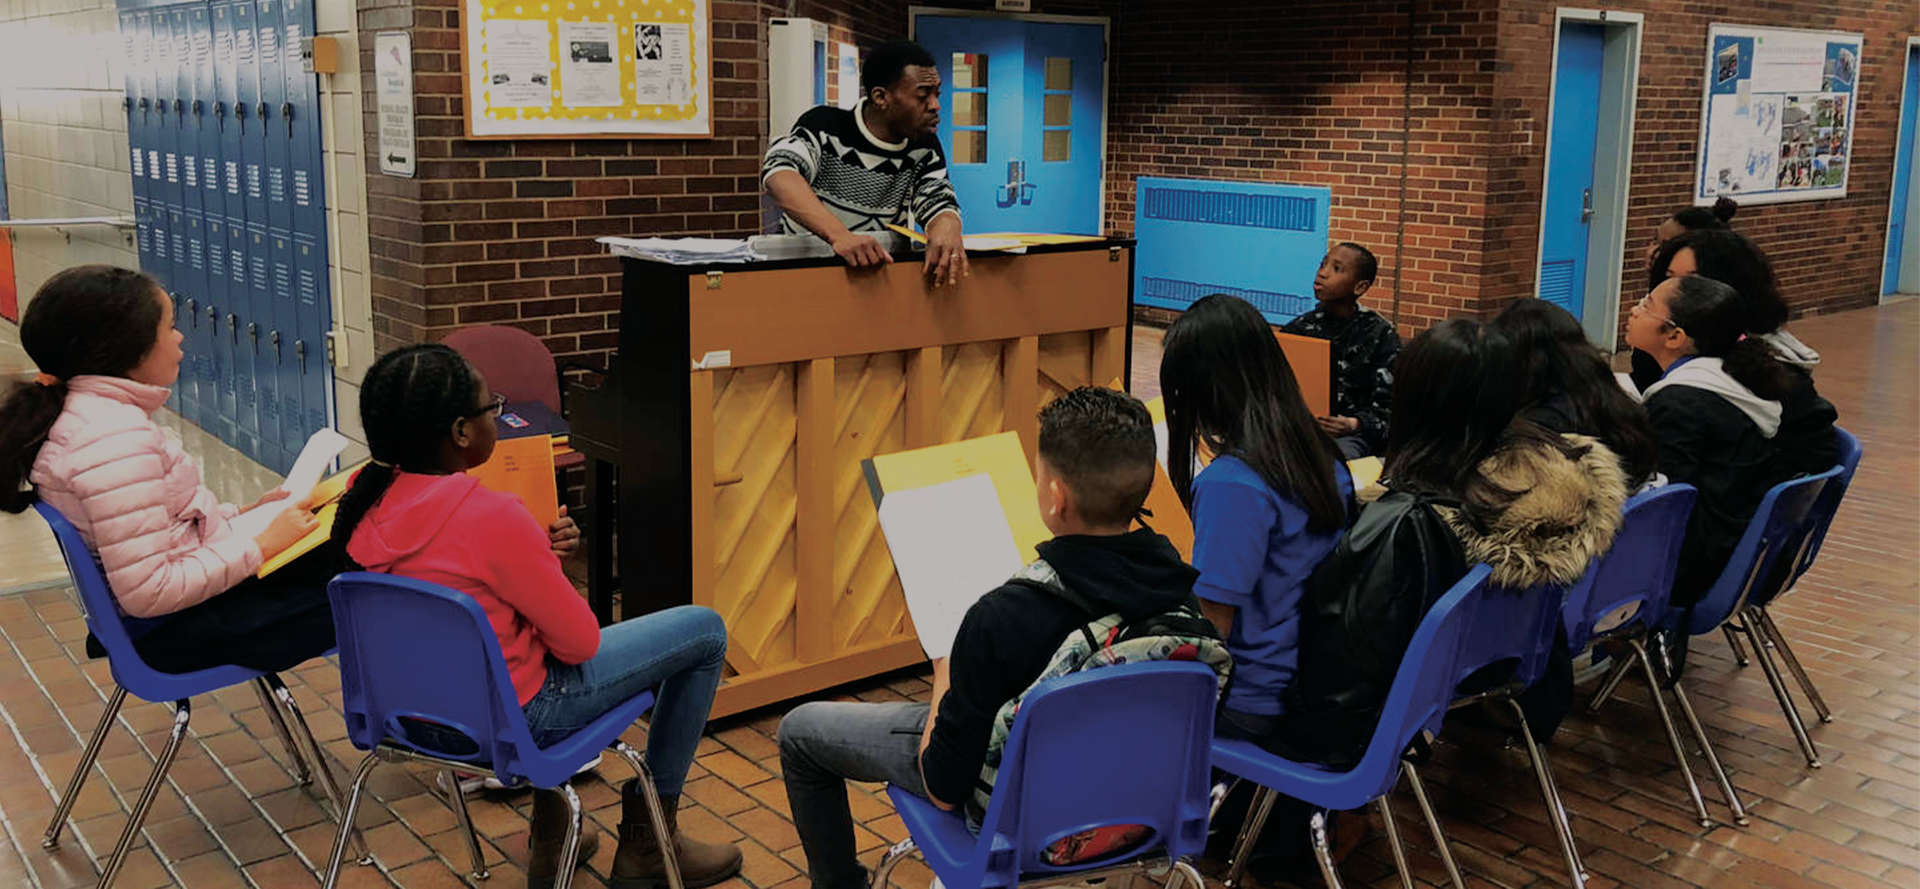 Teacher leaning on a piano and speaking to his students